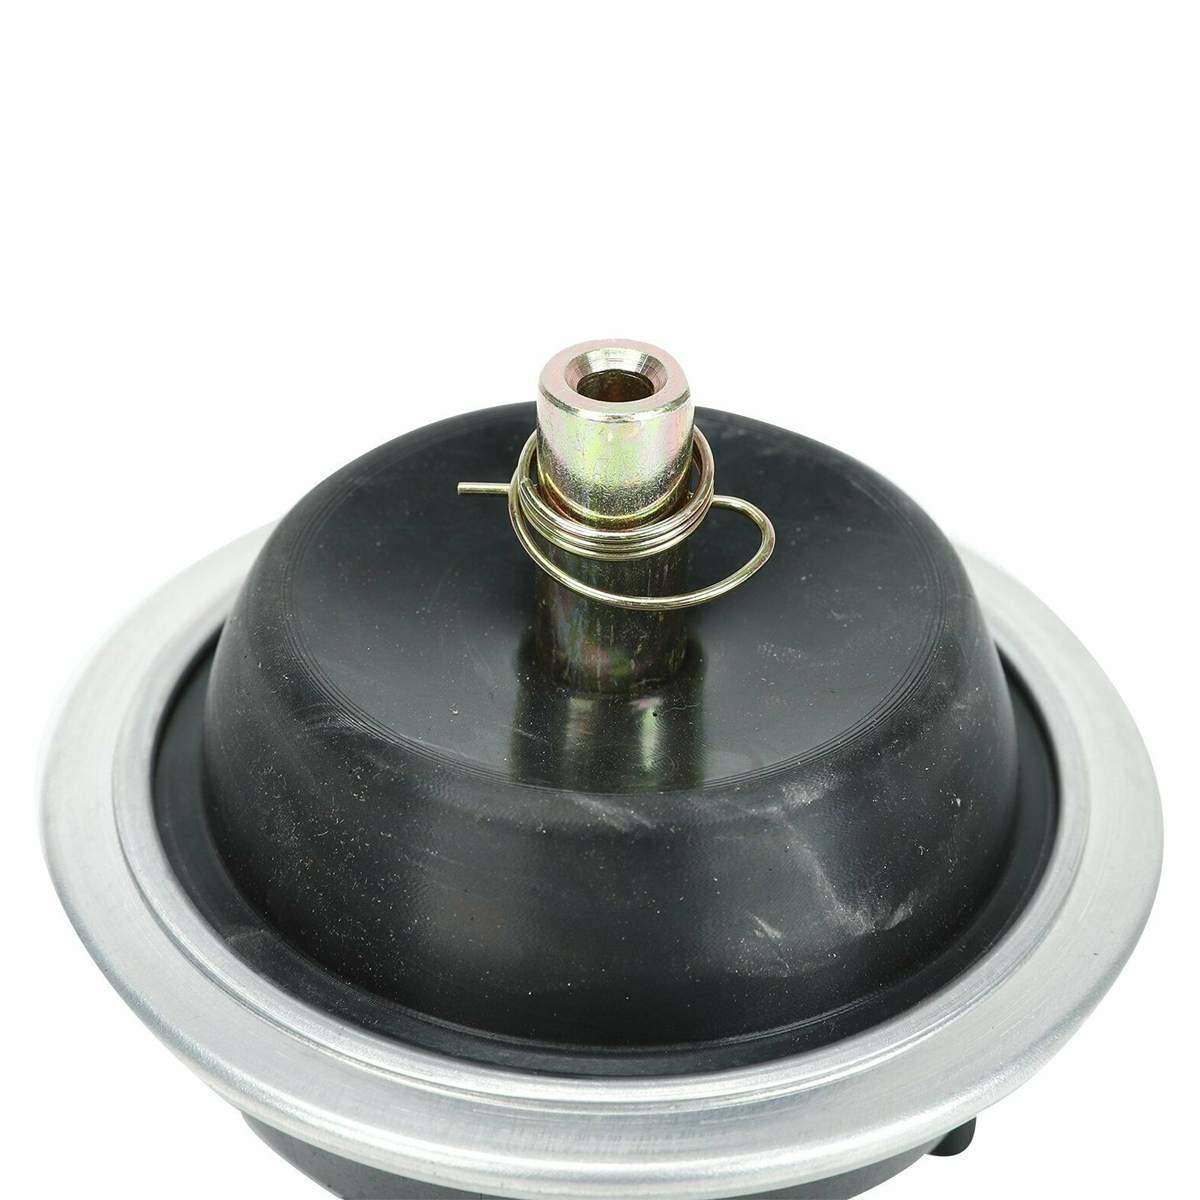 NEW 1PCS Professional 600 102 4WD Differential Vacuum Actuator For Chevrolet for GMC for Pontiac 1983 2005 25031740|Air Bypass Valve| |  - title=